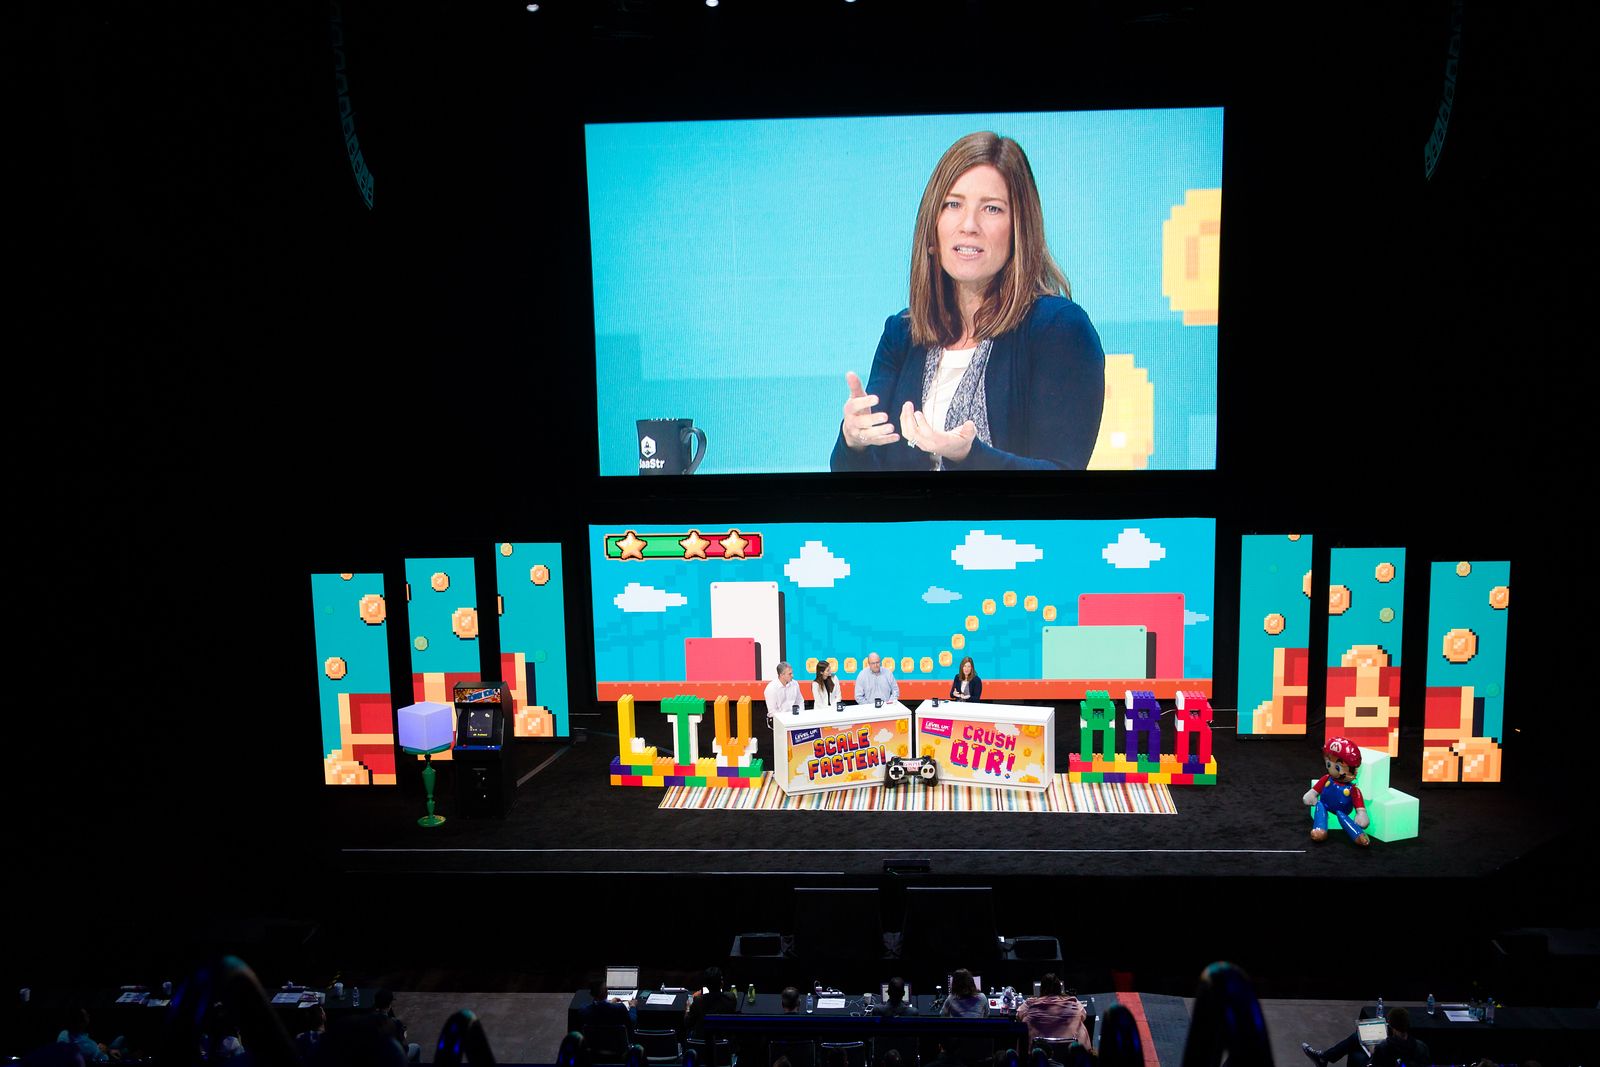 The CEO's Role in Marketing: How to Hustle, Build Momentum, Sell Your Company - and Yourself  Stacey Epstein CEO / ZINC Greg Schott CEO / MULESOFT David Kellogg CEO / HOST ANALYTICS Kathryn Minshew FOUNDER & CEO / THE MUSE